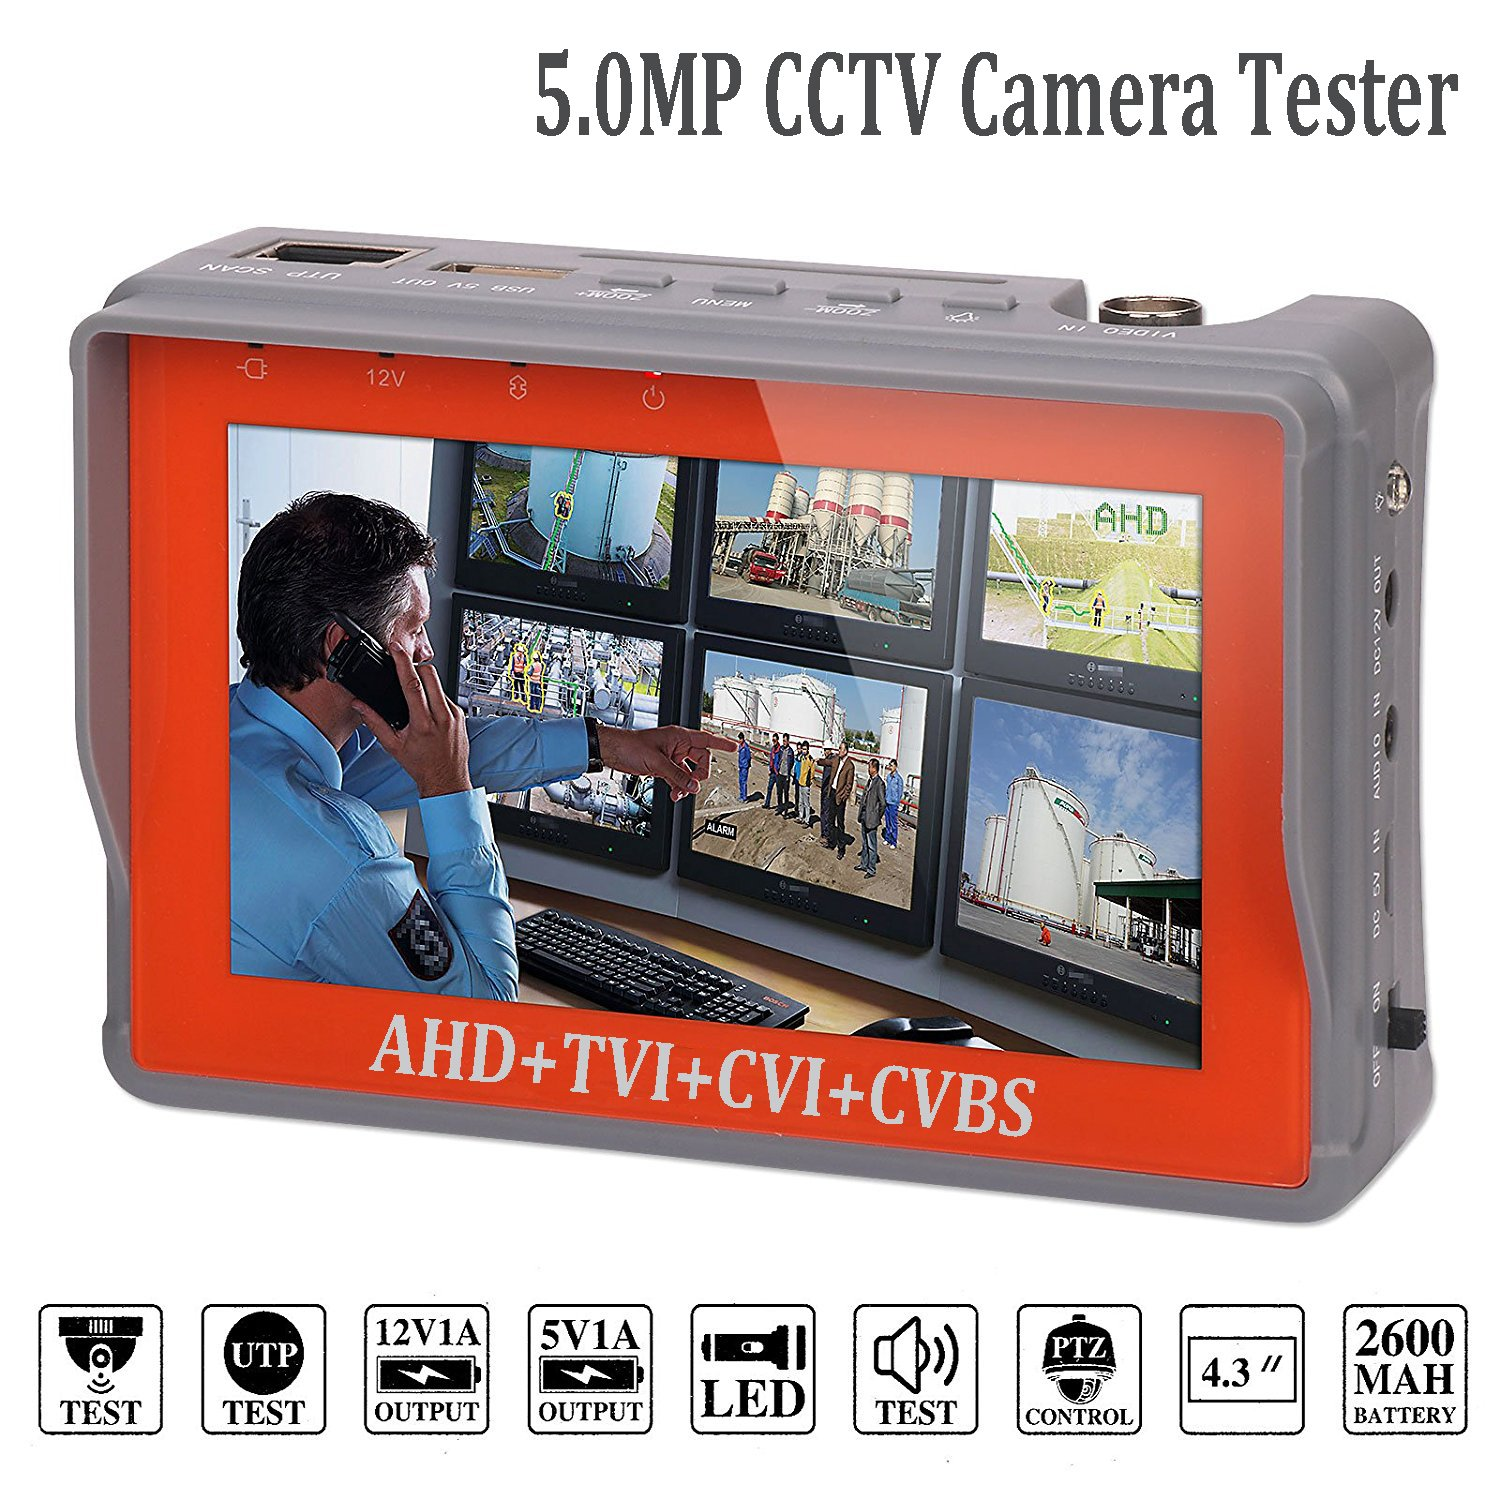 4 in 1 CCTV Tester for 1080P/3.0mp/4.0mp/5.0 Megapixel AHD, TVI, CVI, CVBS Analog Security Camera, 4.3 inch LCD Screen Video Monitor, 12V 1A DC Power Out, PTZ/UTP Cable/Audio Tester w/ 2600mAh Battery by ZUEXT